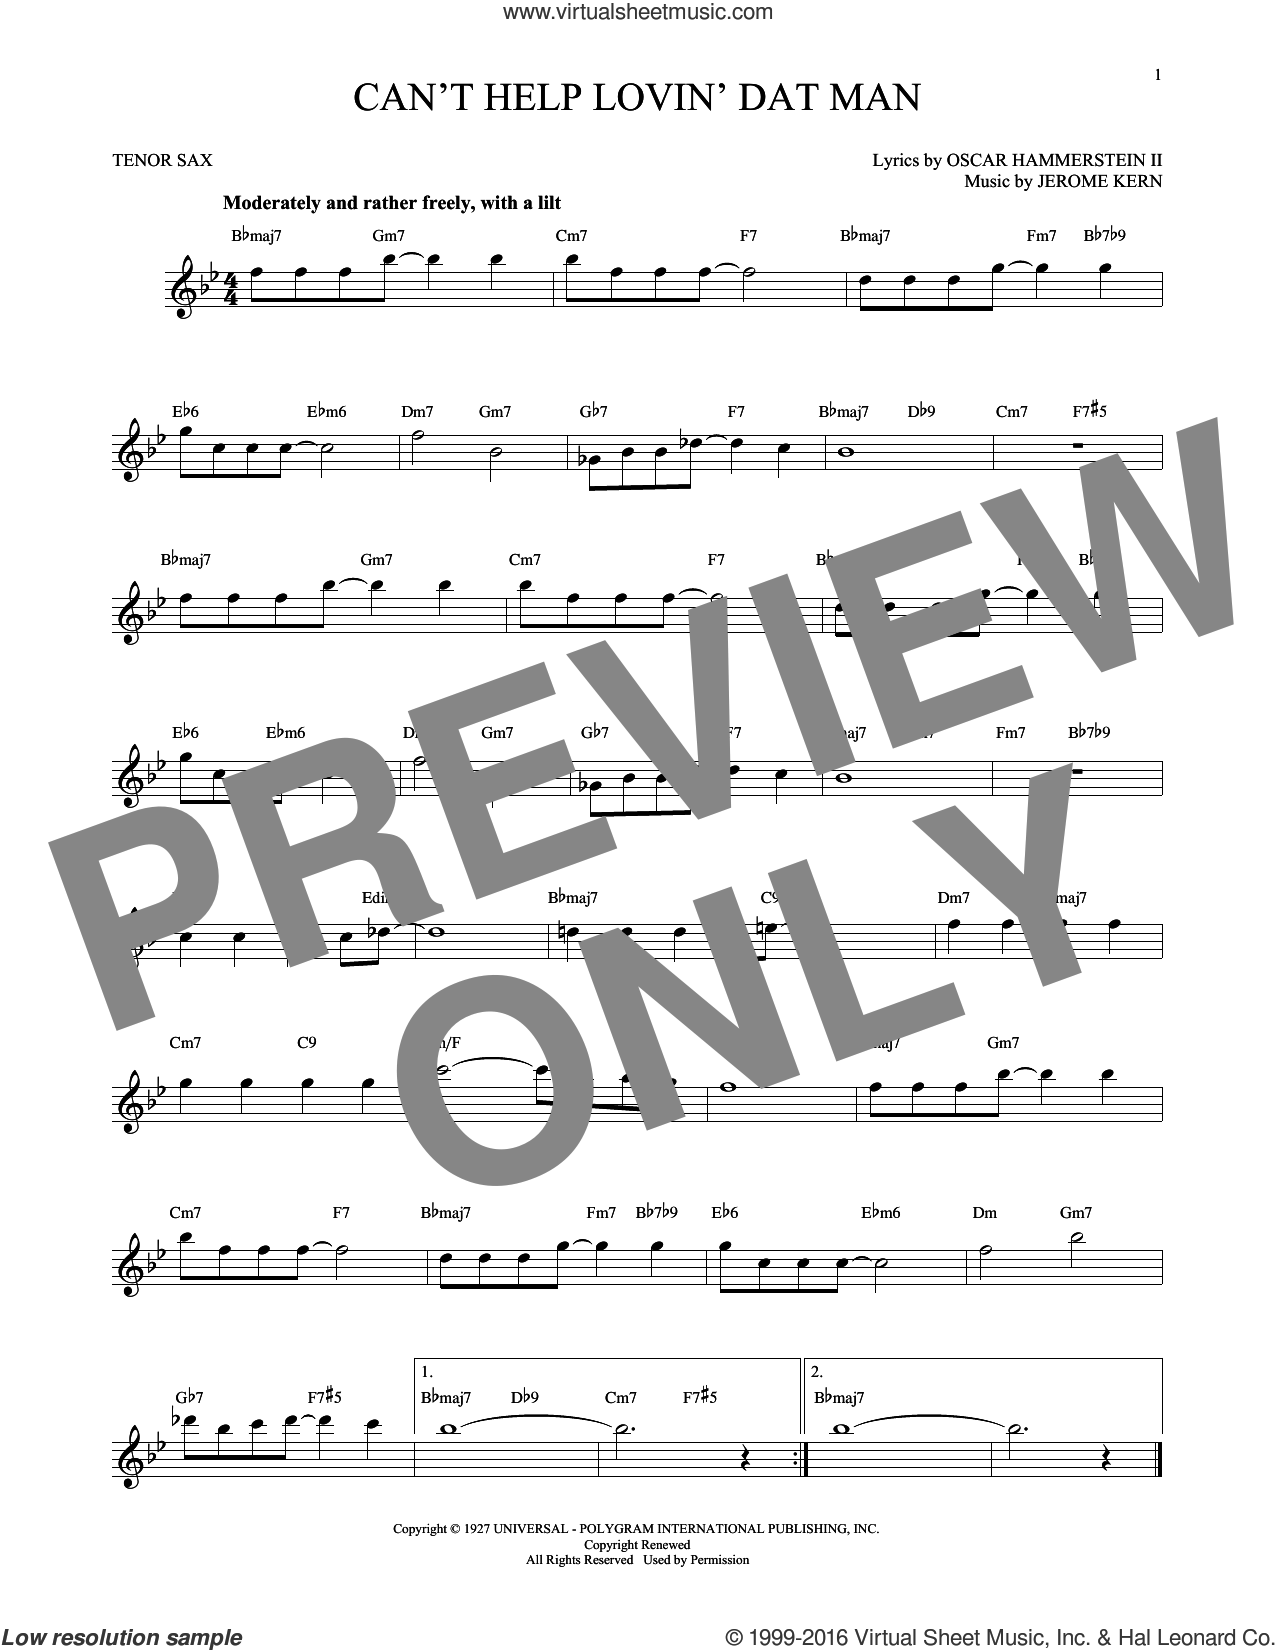 Can't Help Lovin' Dat Man sheet music for tenor saxophone solo by Oscar II Hammerstein, Annette Warren, Helen Morgan and Jerome Kern, intermediate skill level